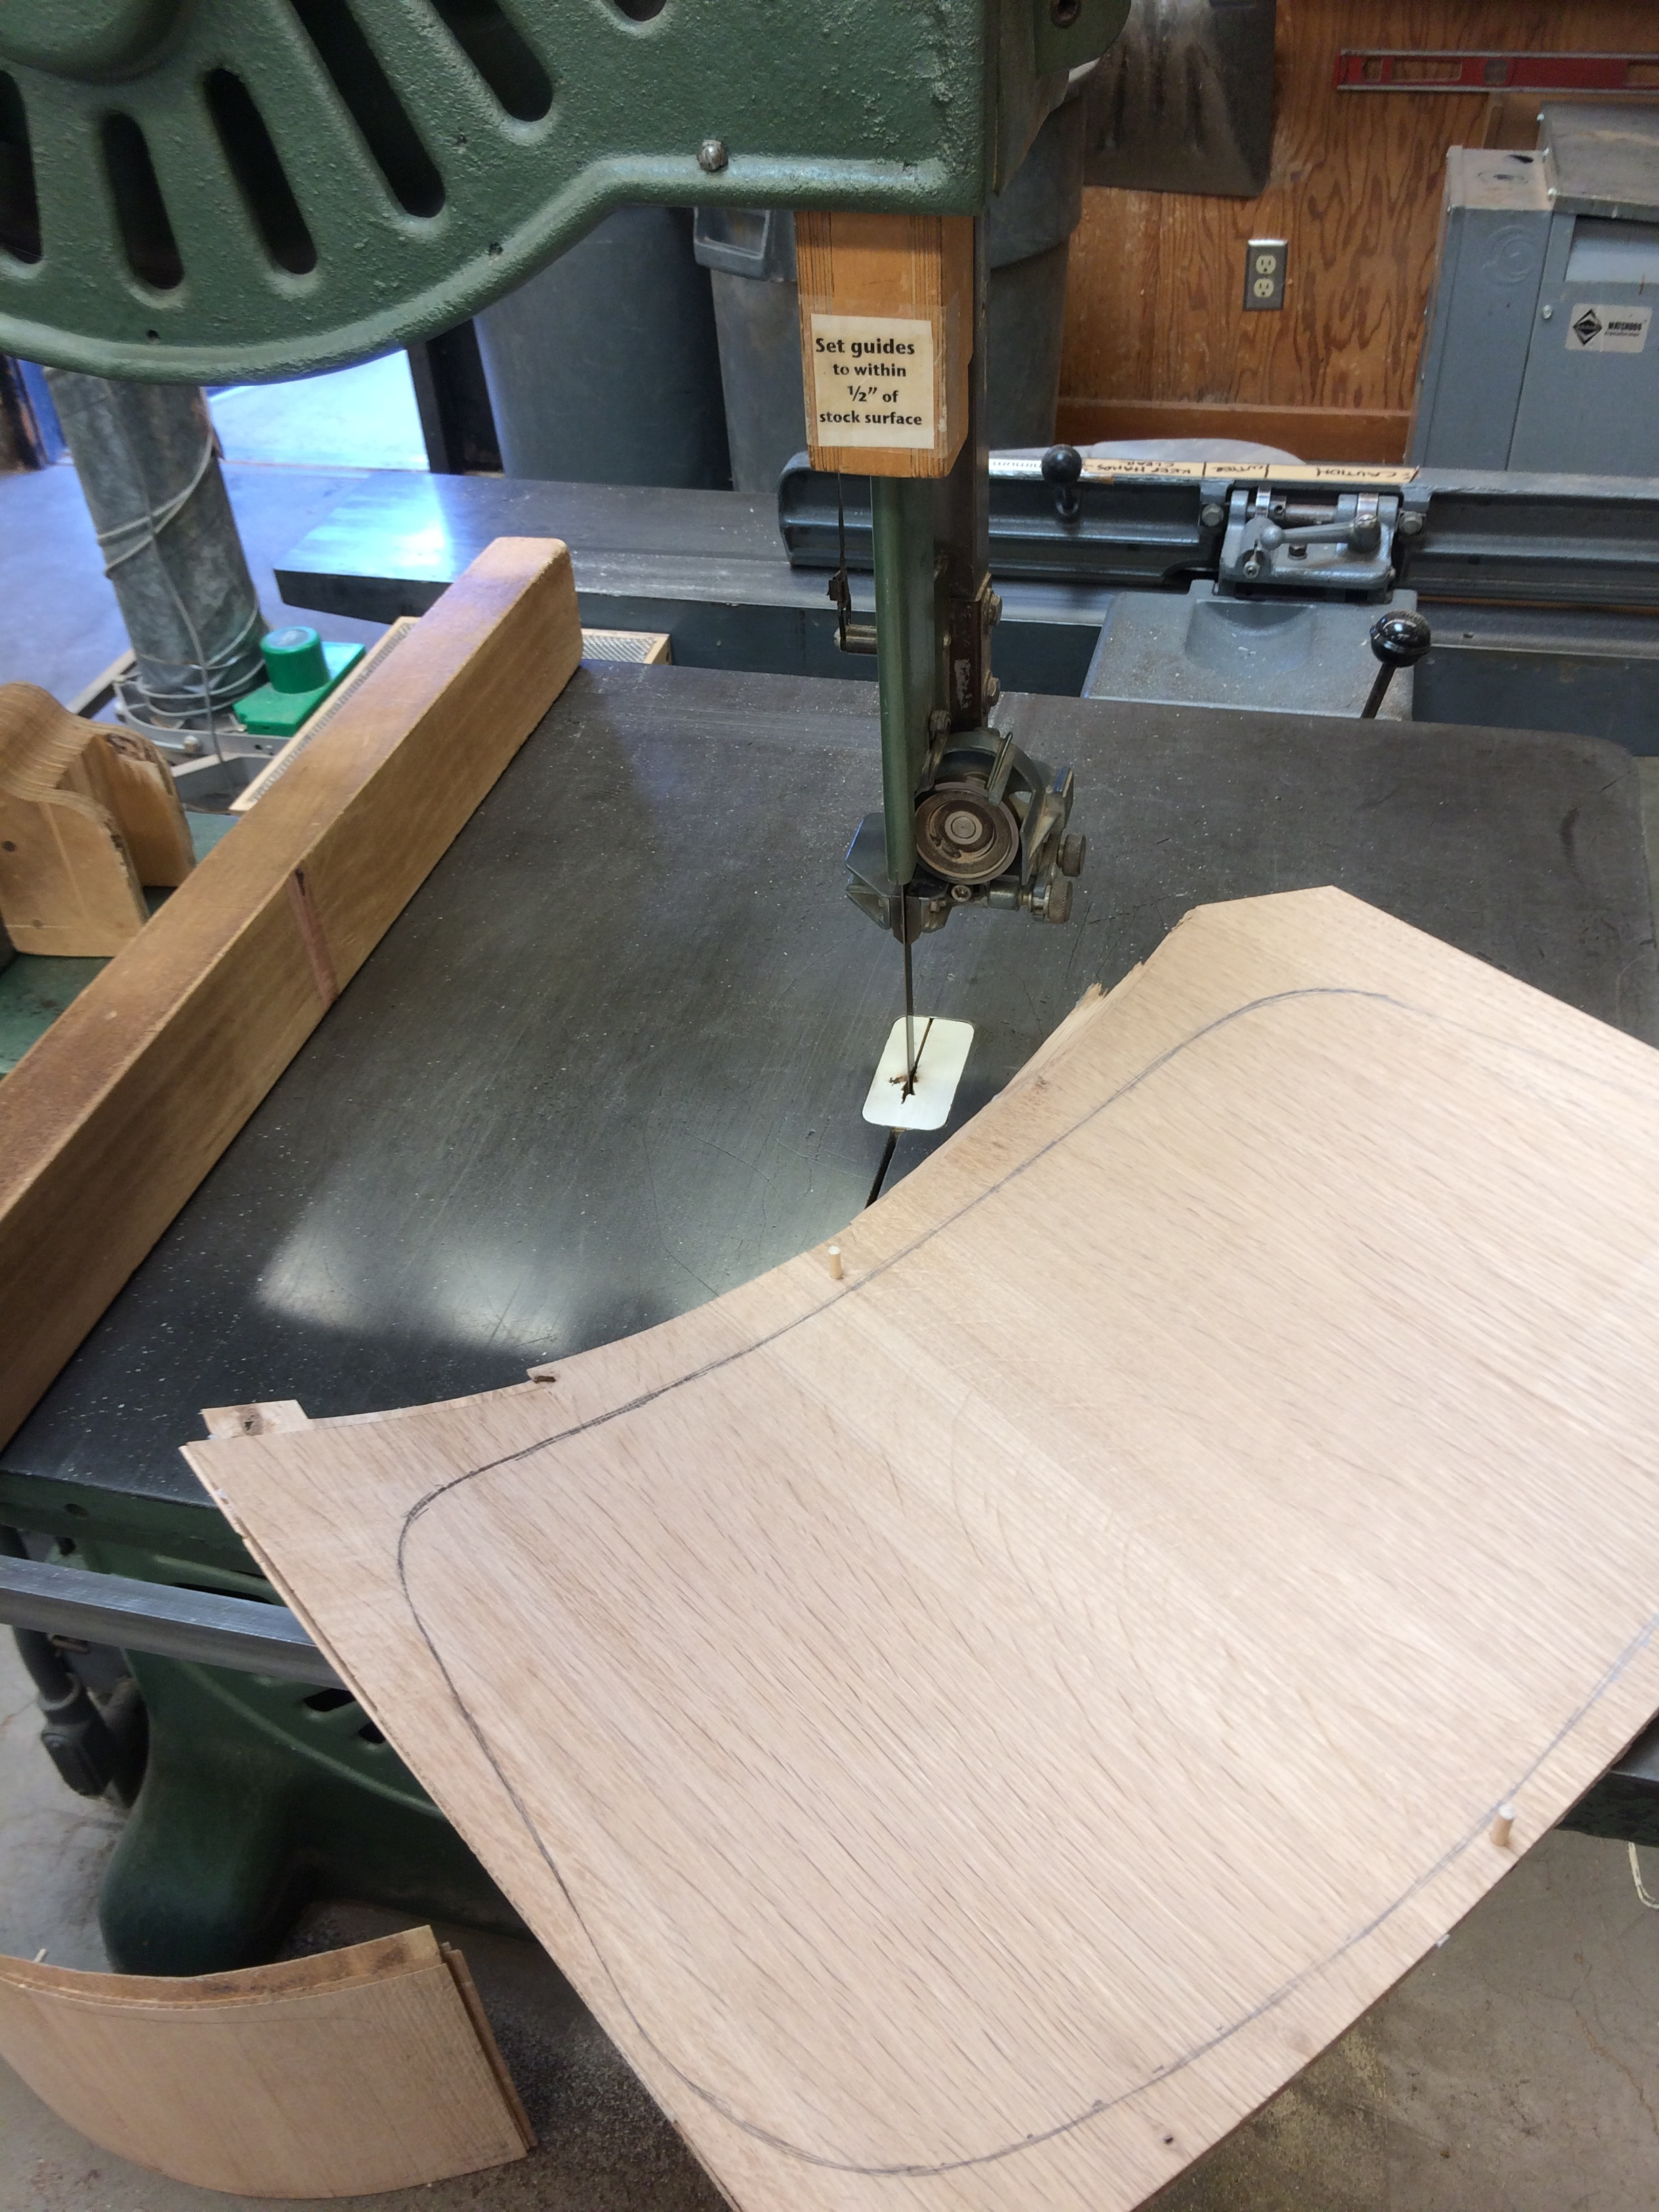 The bandsaw makes quick work of the waste. A compass planes, block plane, and spokeshaves will remove the tool marks and fair the curves.